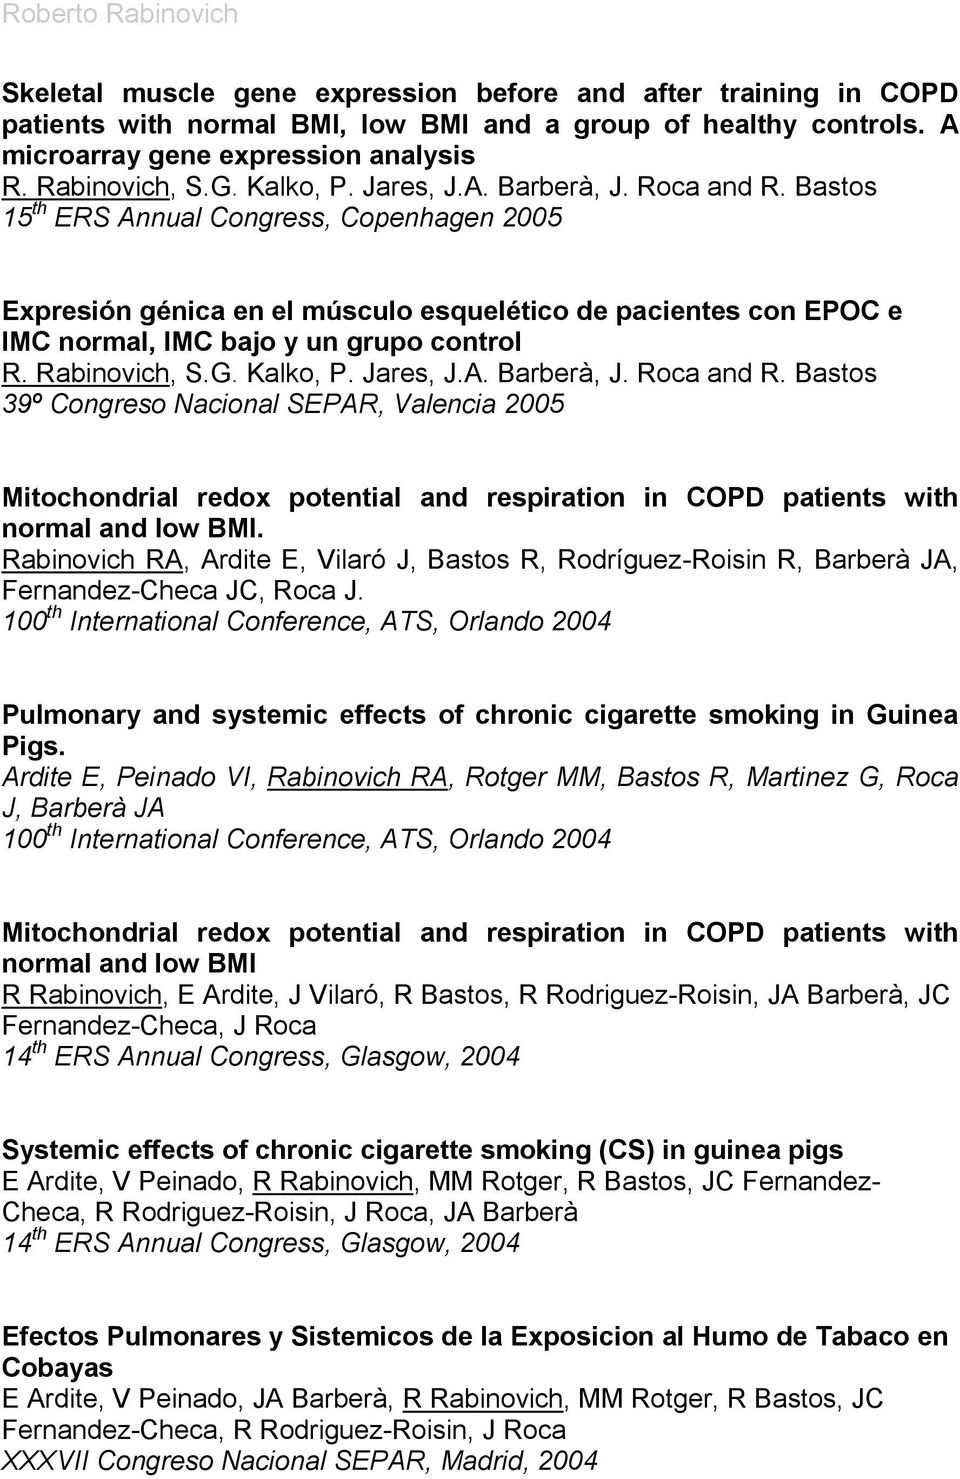 Rabinovich, S.G. Kalko, P. Jares, J.A. Barberà, J. Roca and R. Bastos 39º Congreso Nacional SEPAR, Valencia 2005 Mitochondrial redox potential and respiration in COPD patients with normal and low BMI.